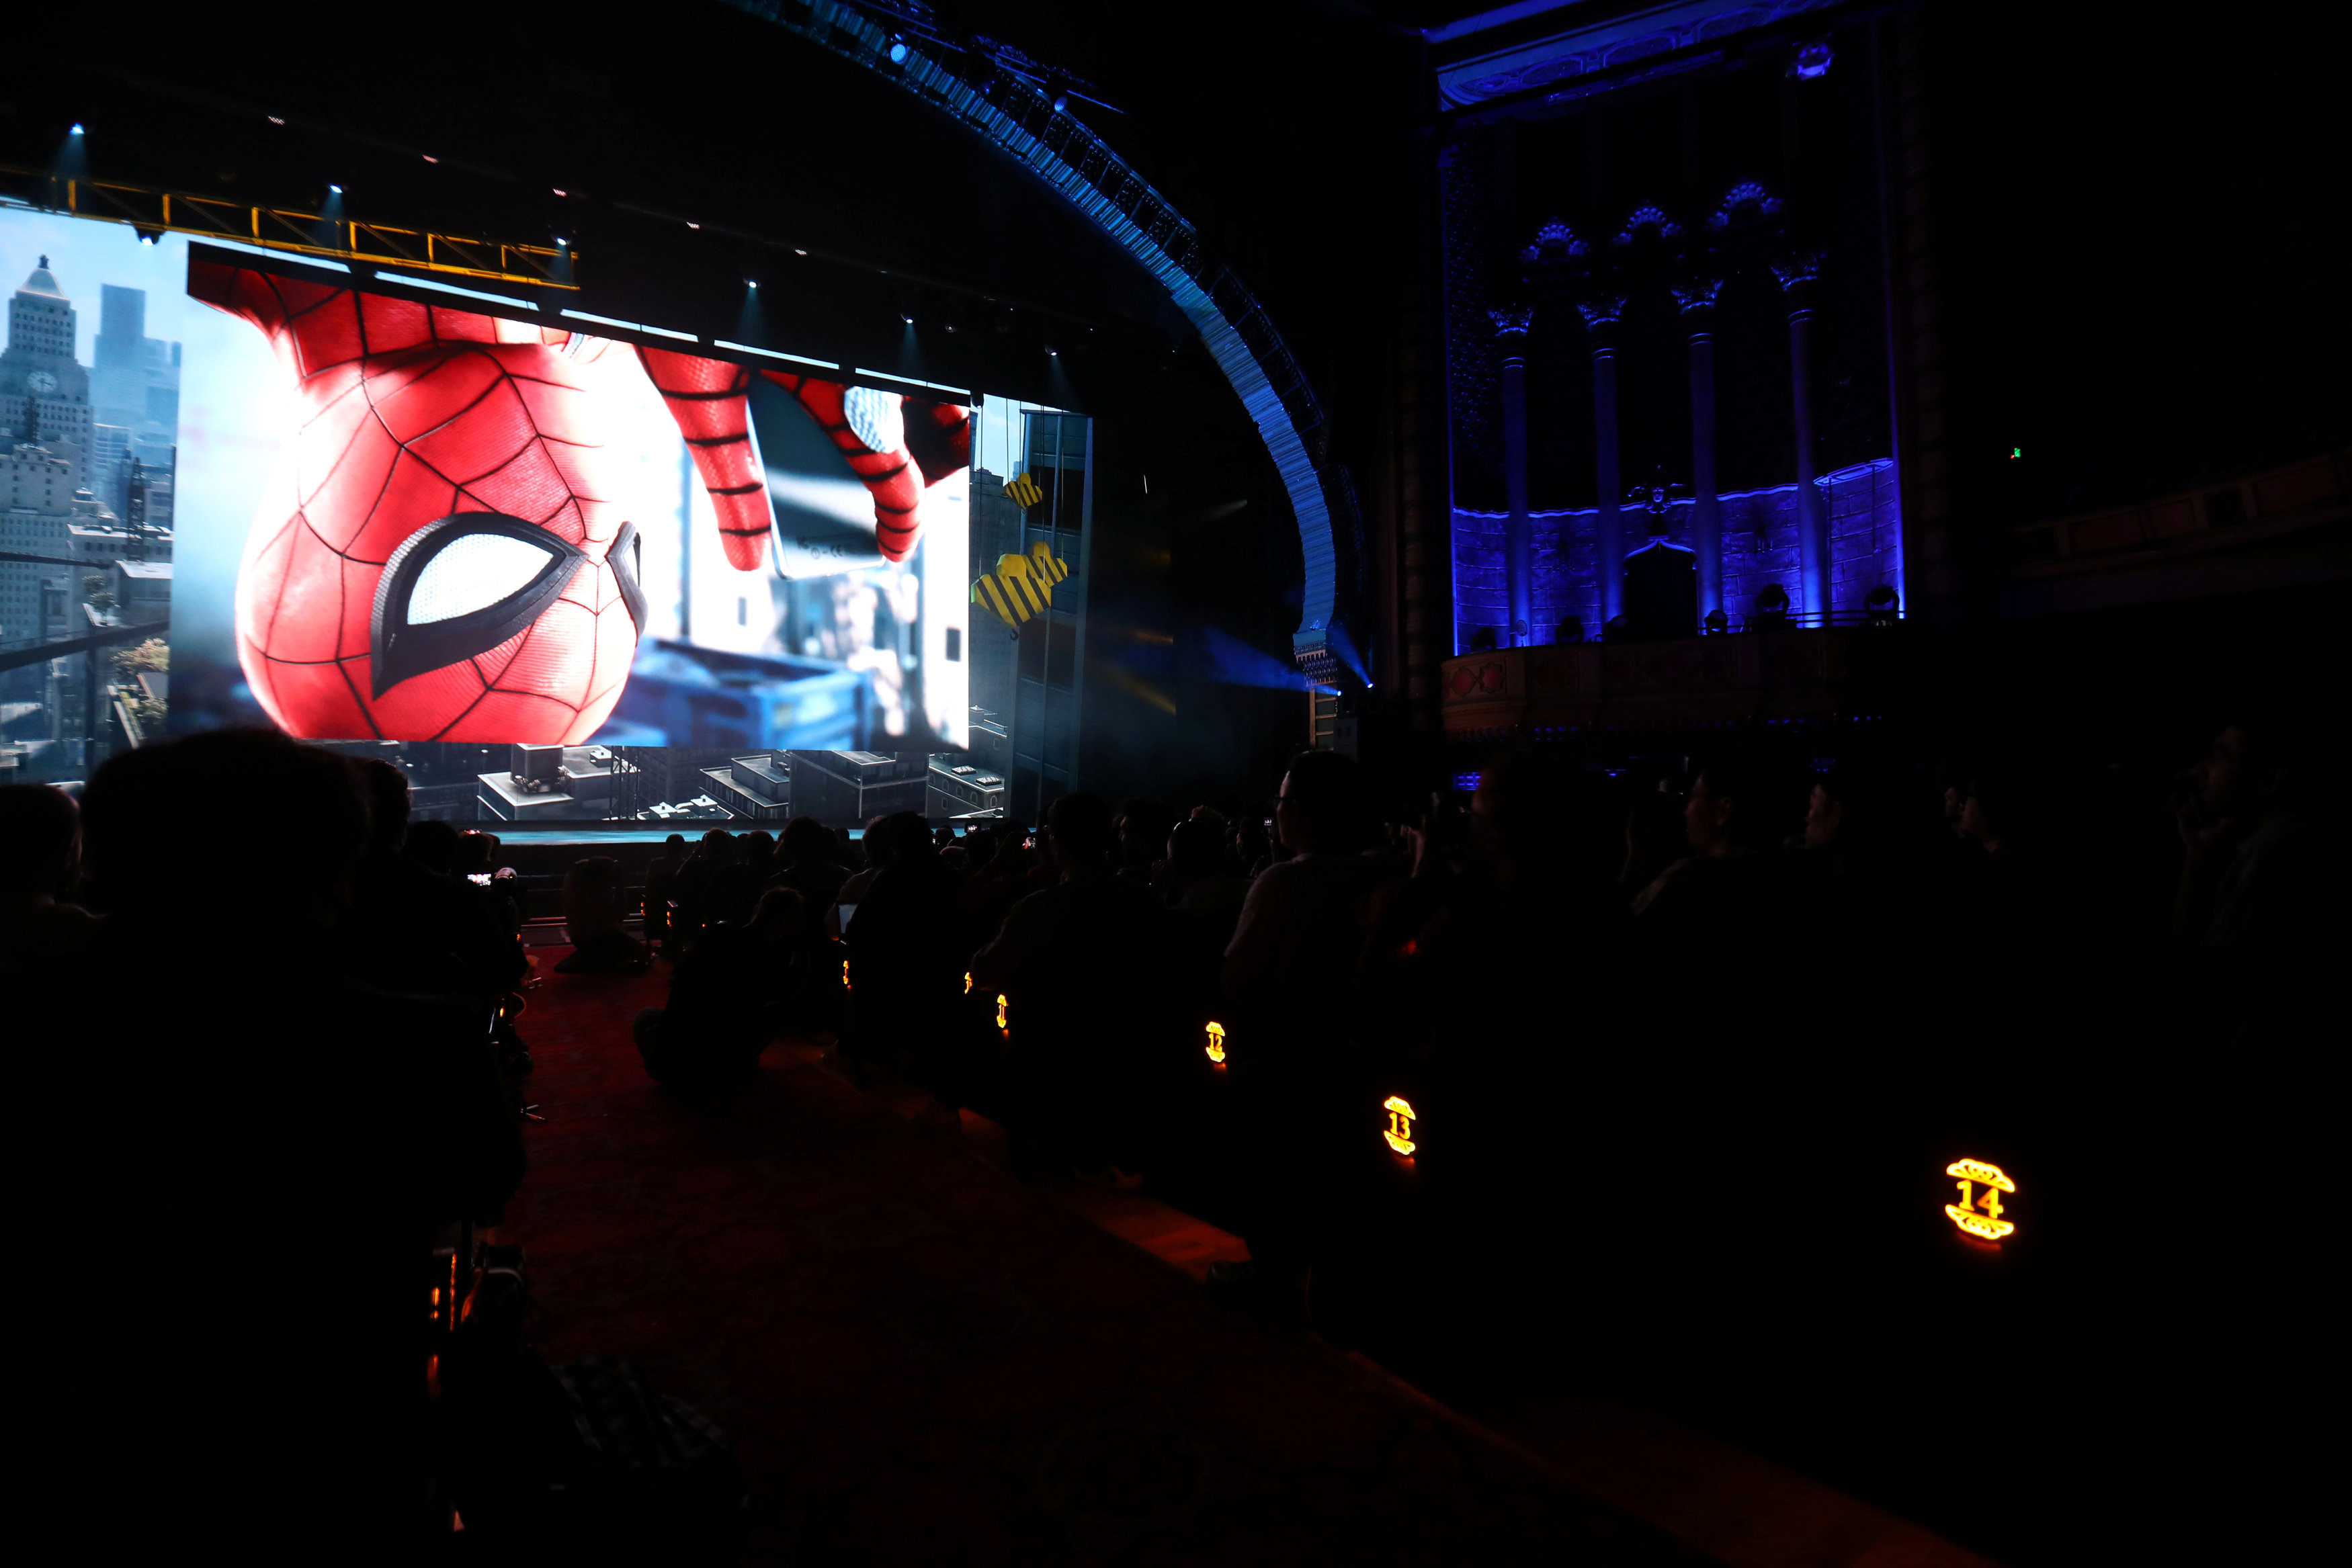 The Spider-man game was unveiled at the Electronic Entertainment expo in Los Angeles.